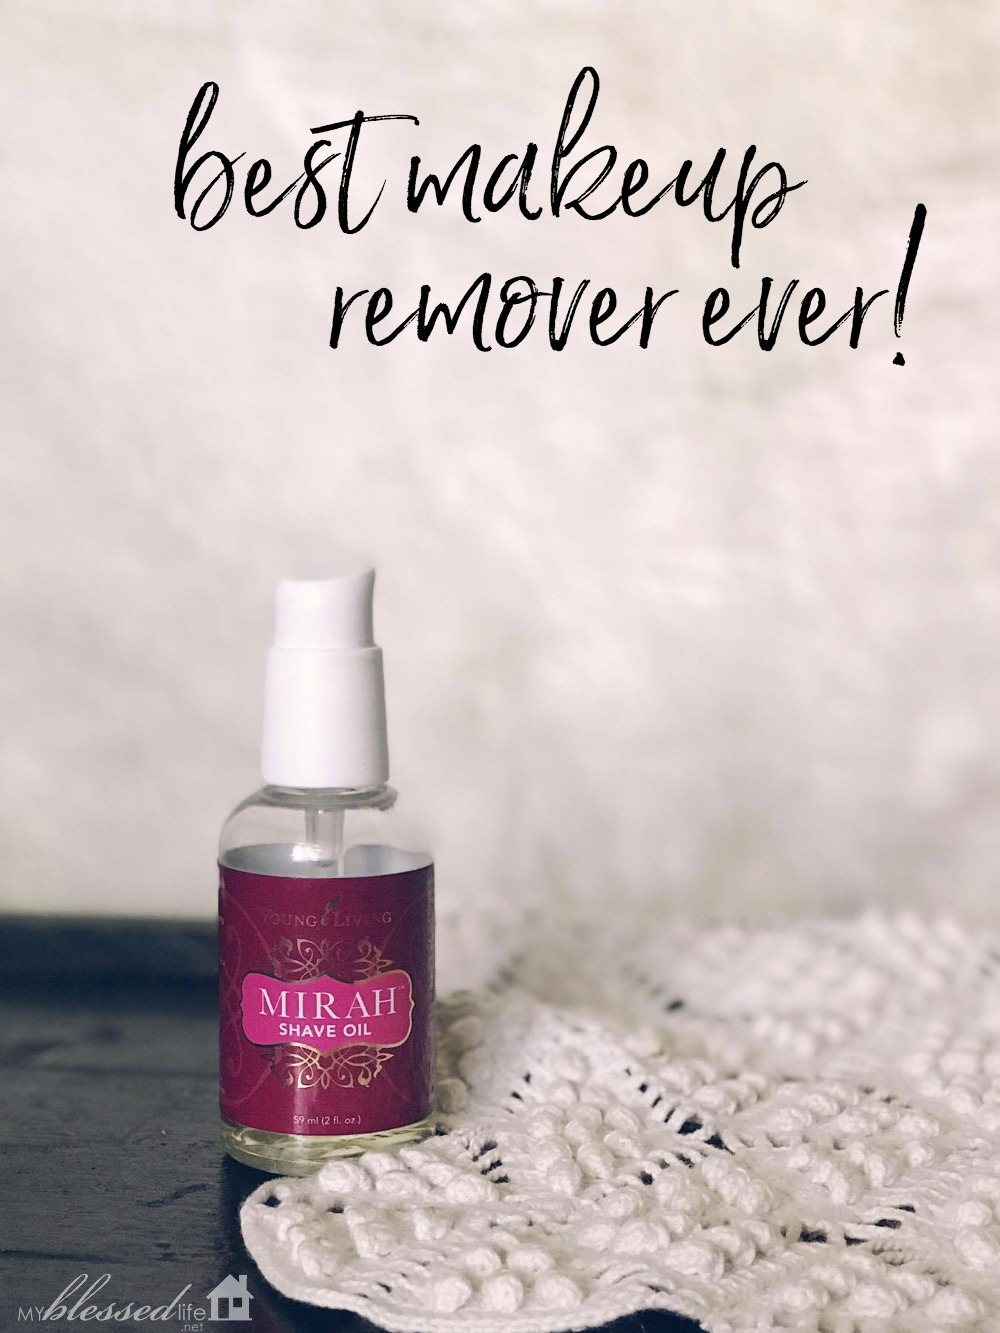 Mirah Shave Oil